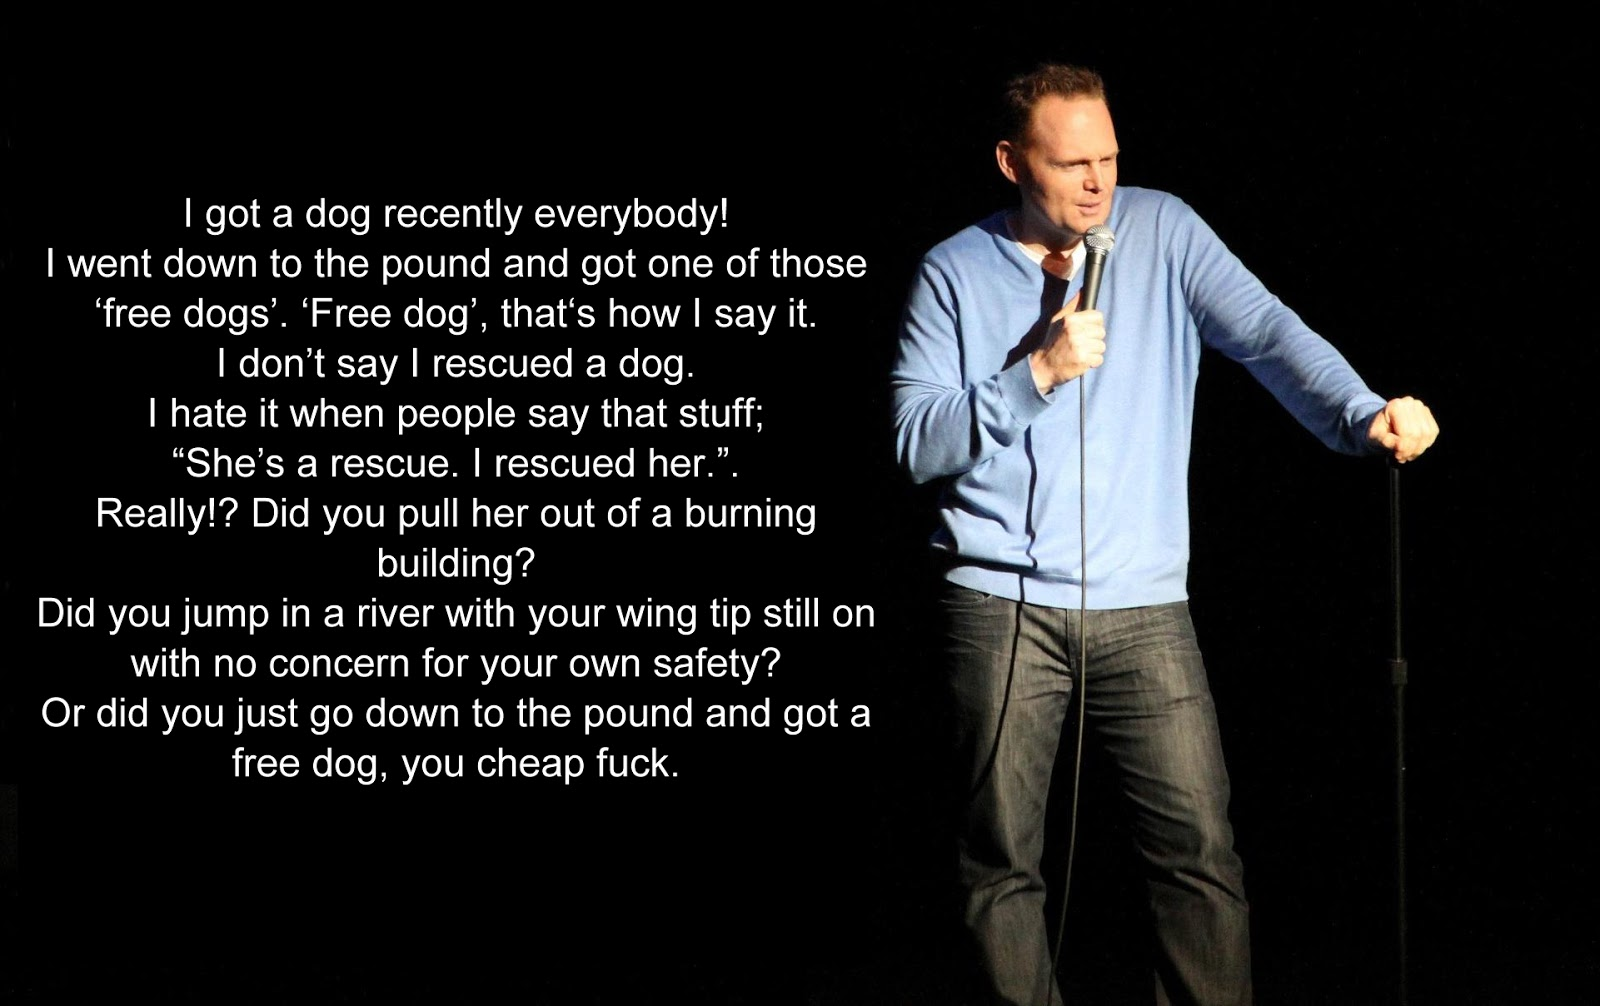 A joke about getting a free dog from a shelter